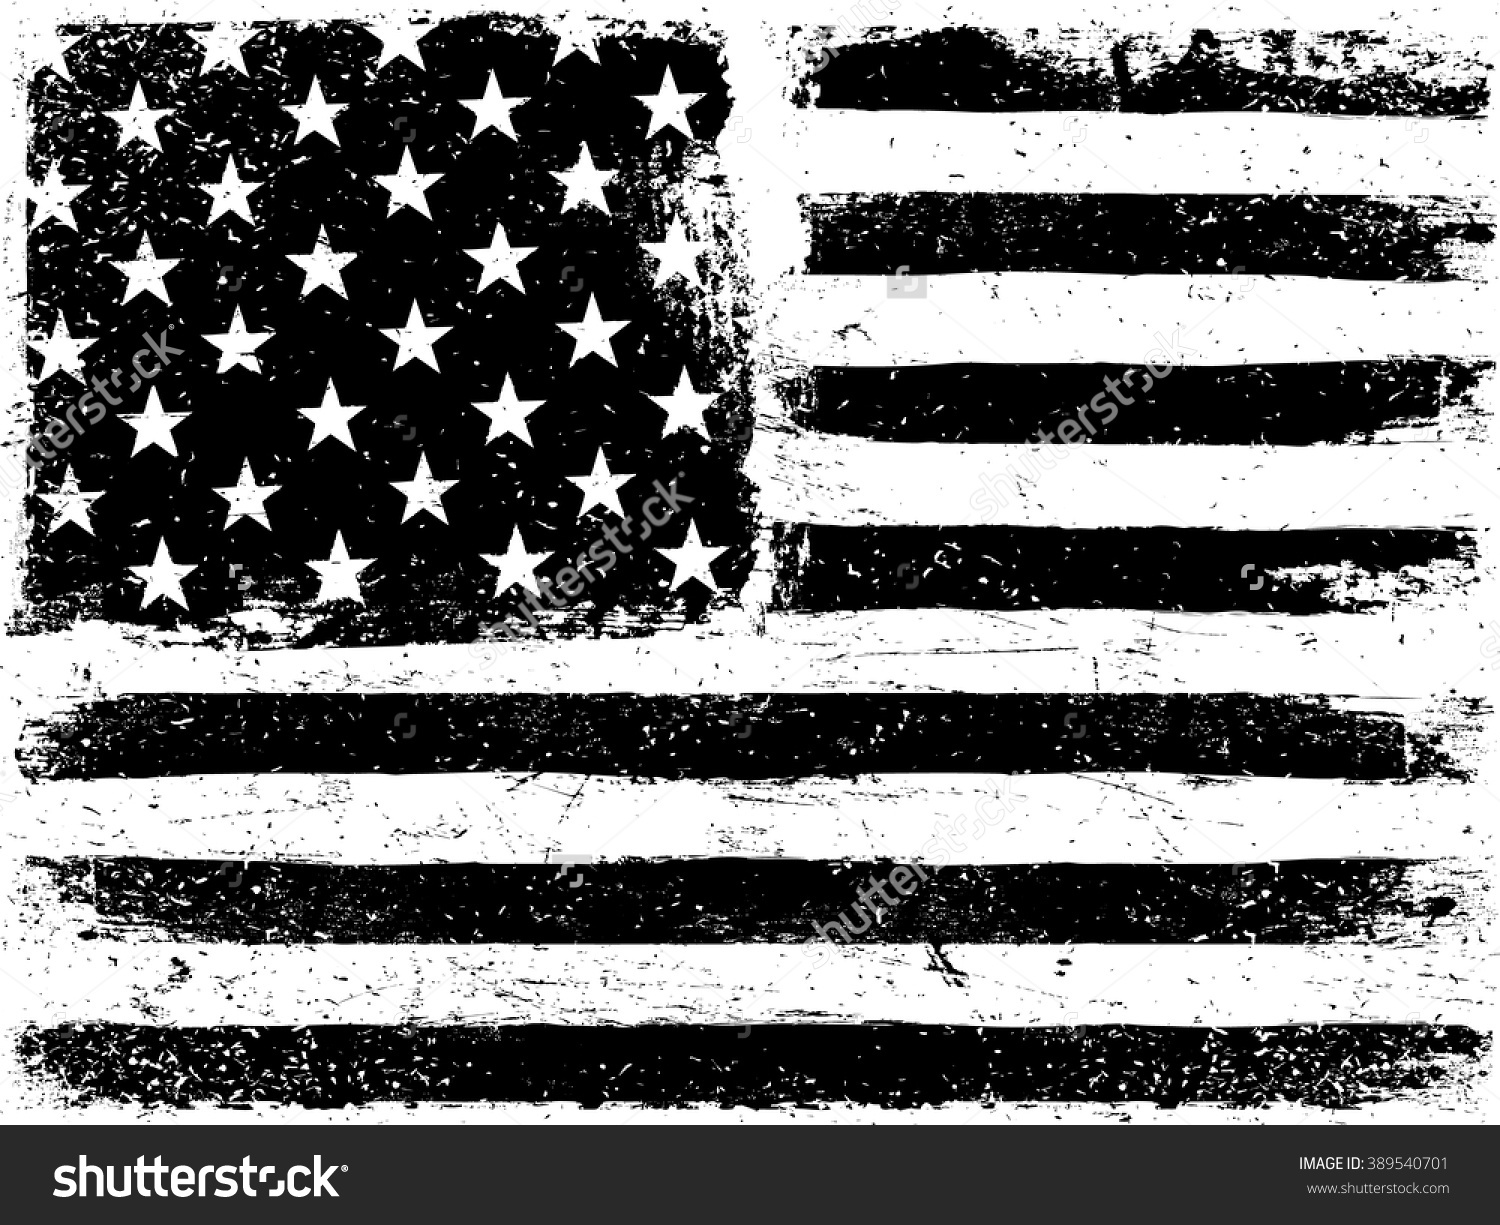 Black and white flag distressed clipart.